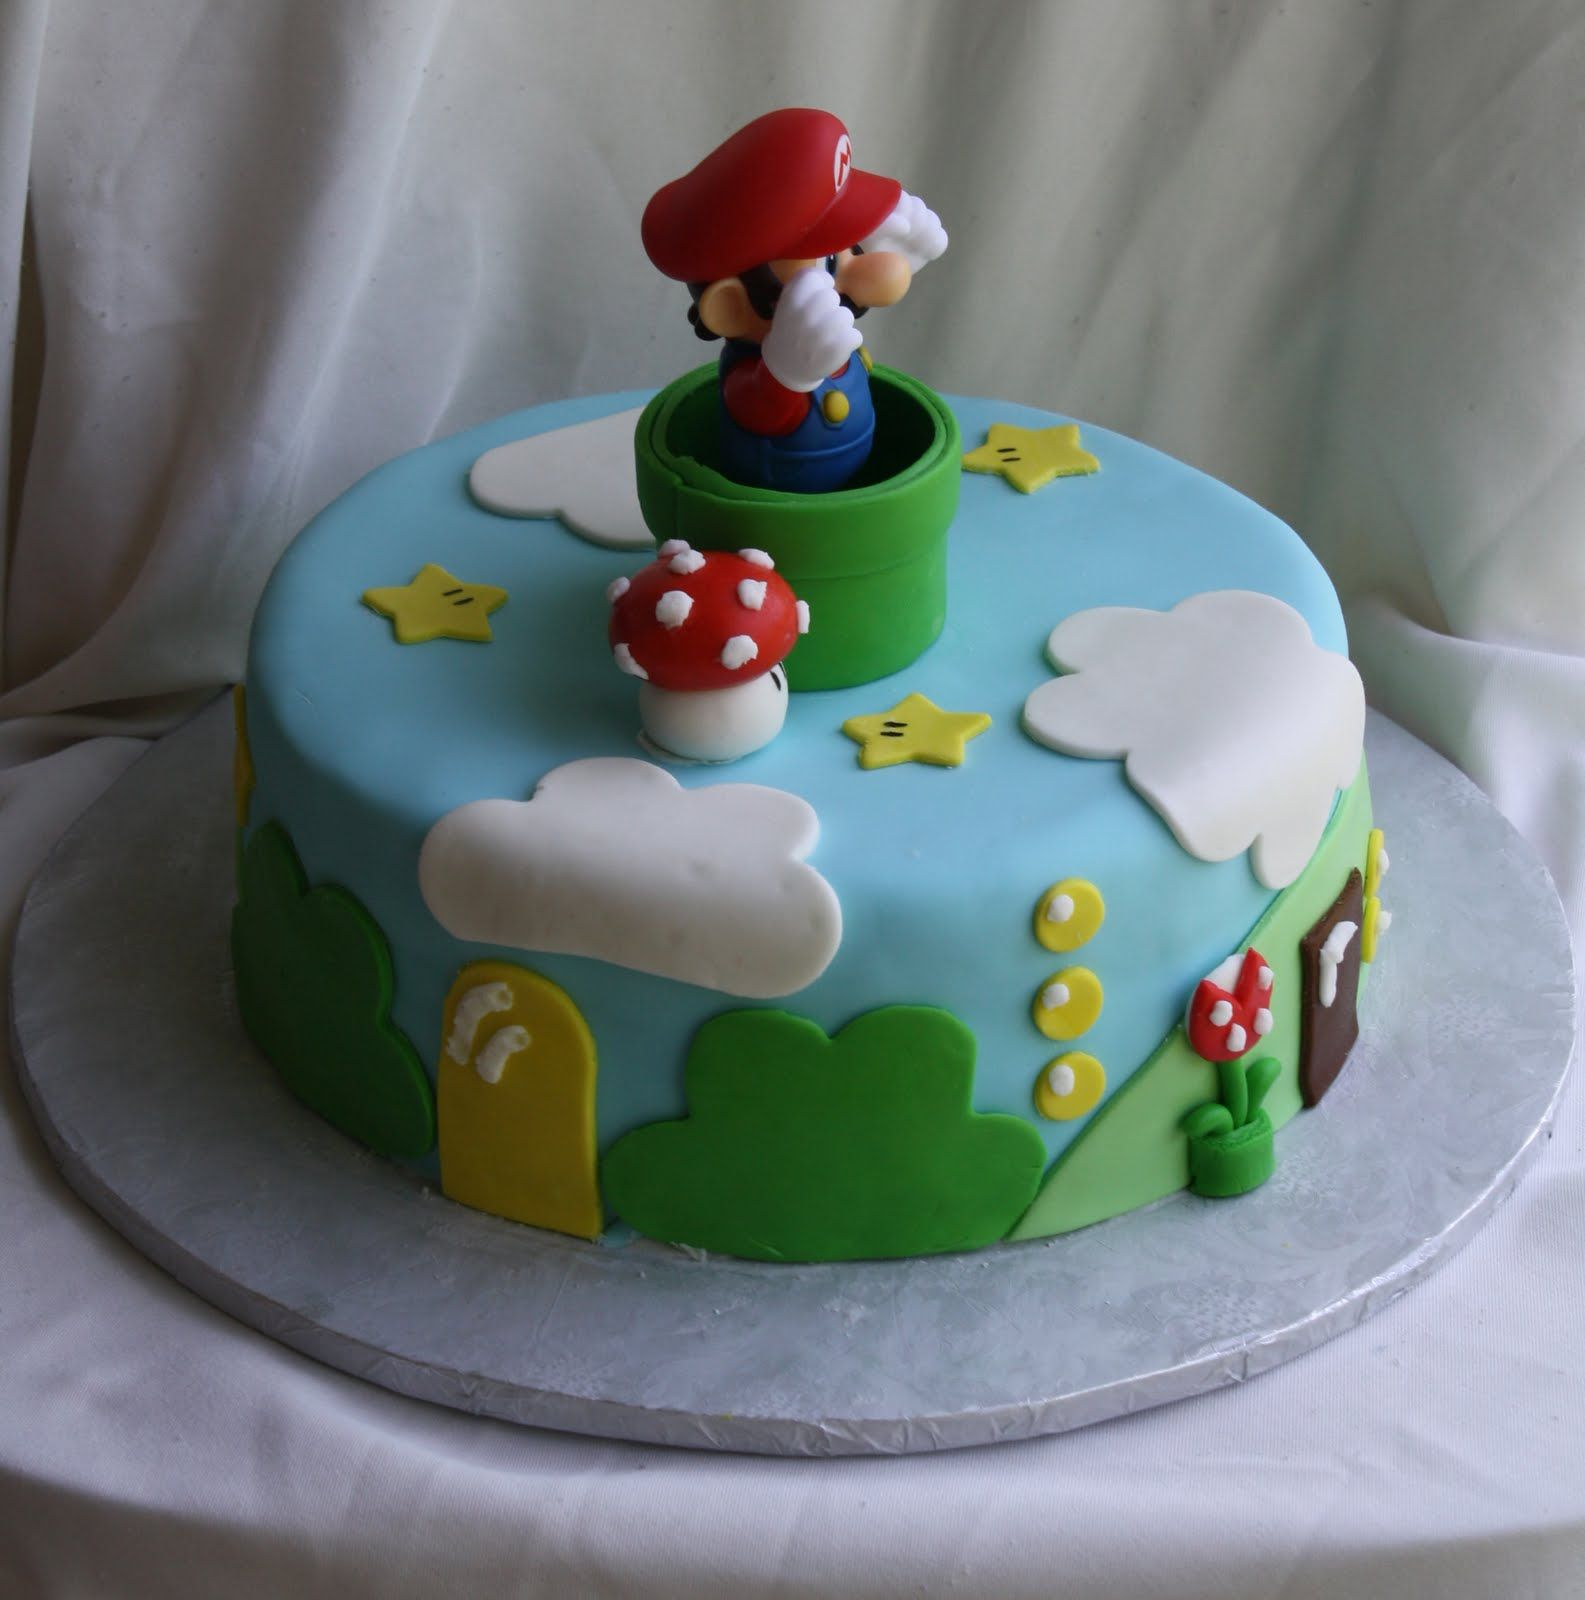 How To Make A Yoshi Cake From Cupcakes